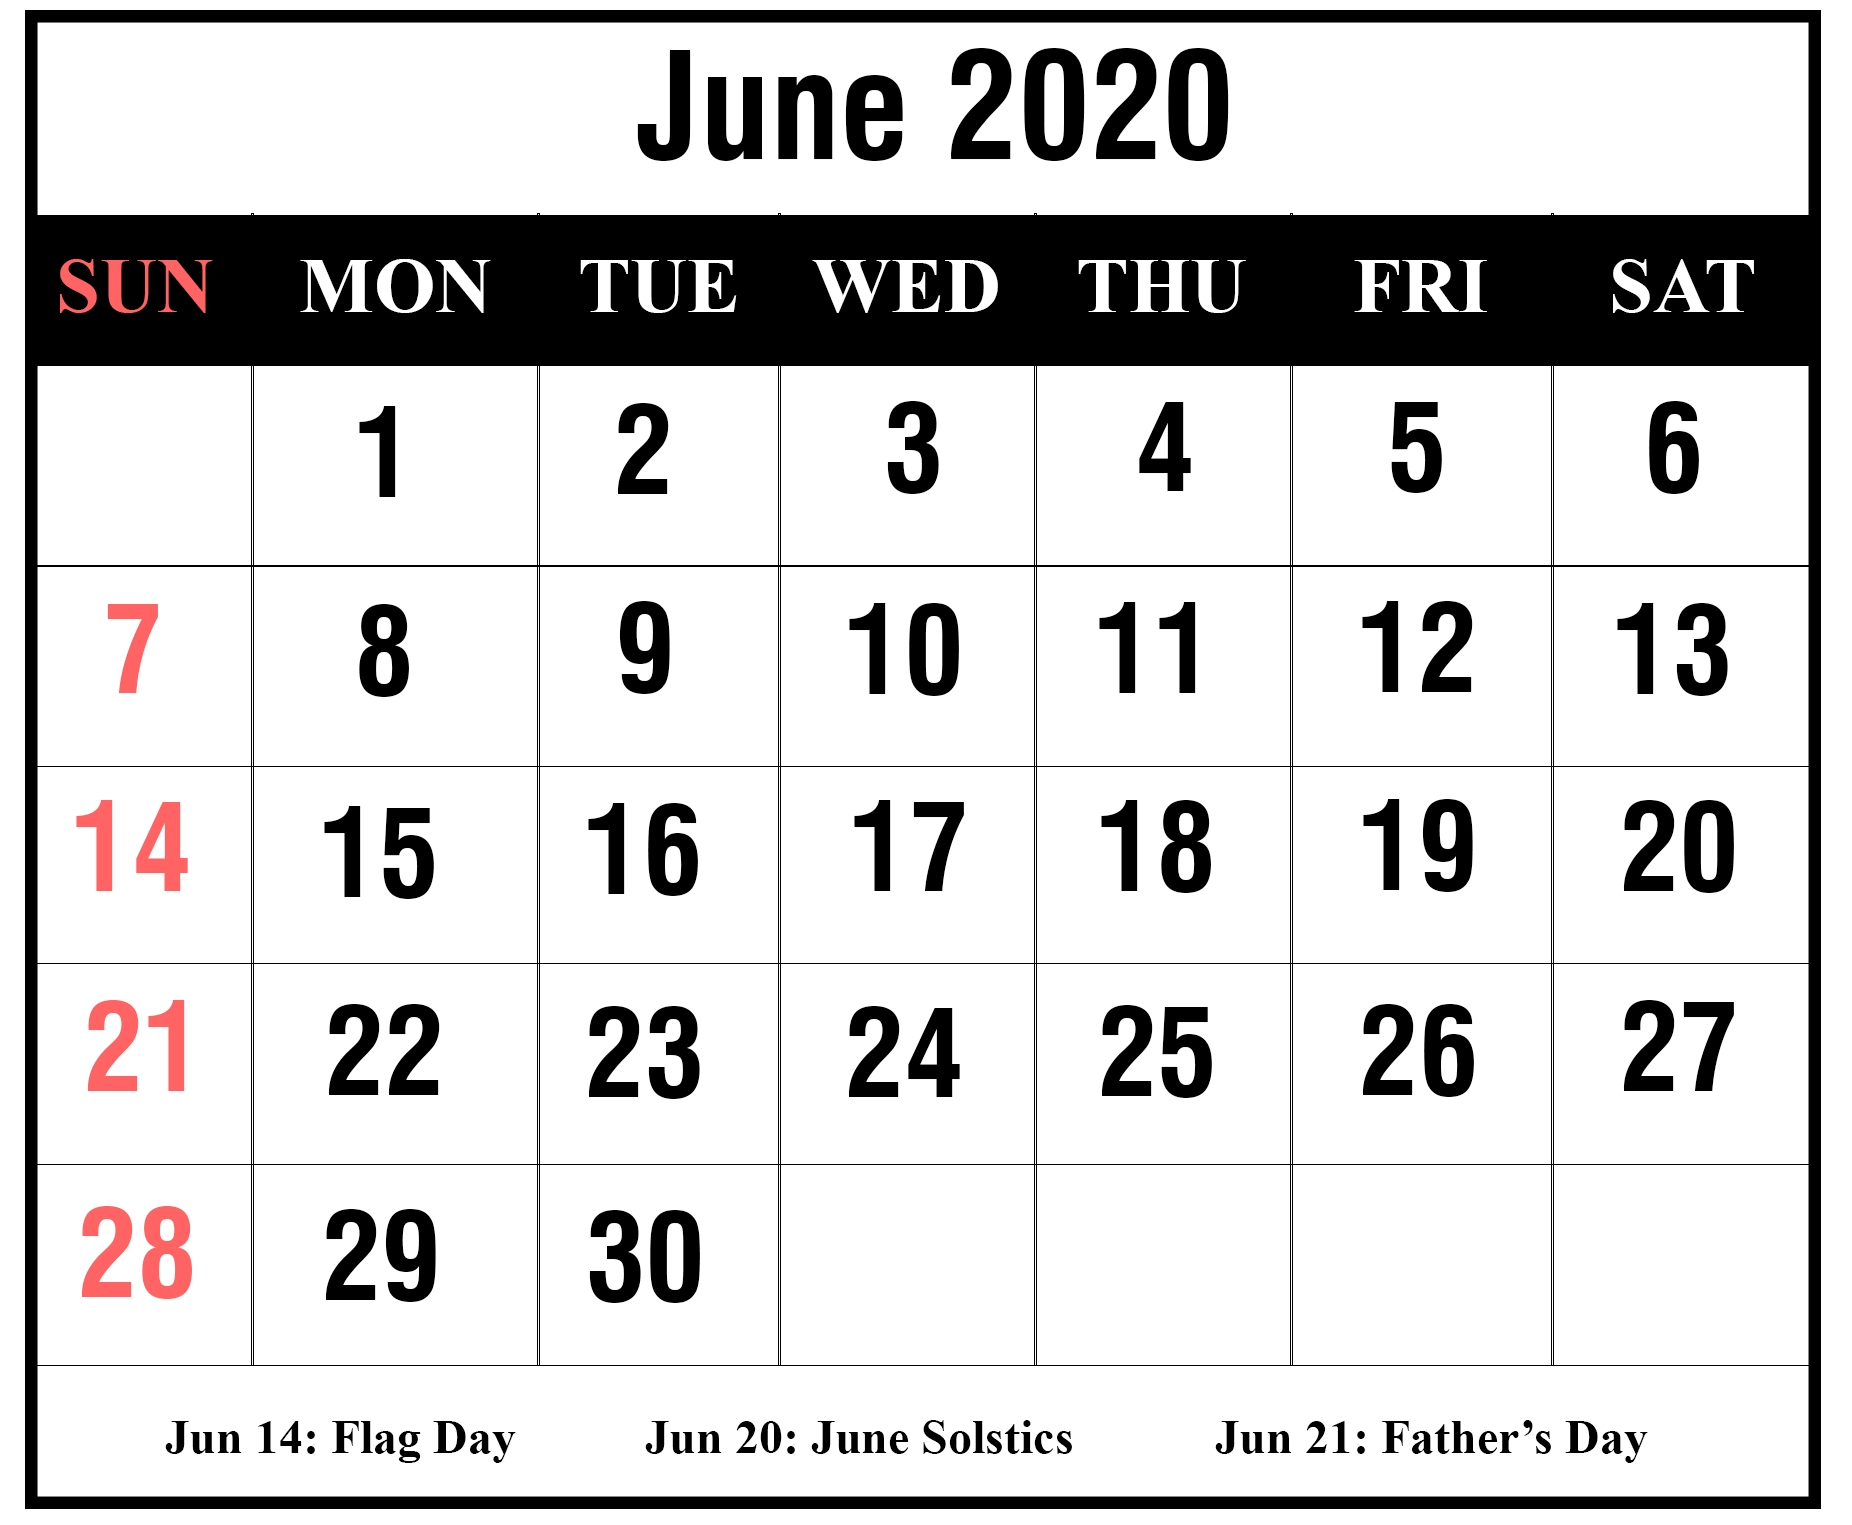 Free Blank June 2020 Printable Calendar With Holidays [Pdf, Excel with regard to 2020 Calender With Space To Write